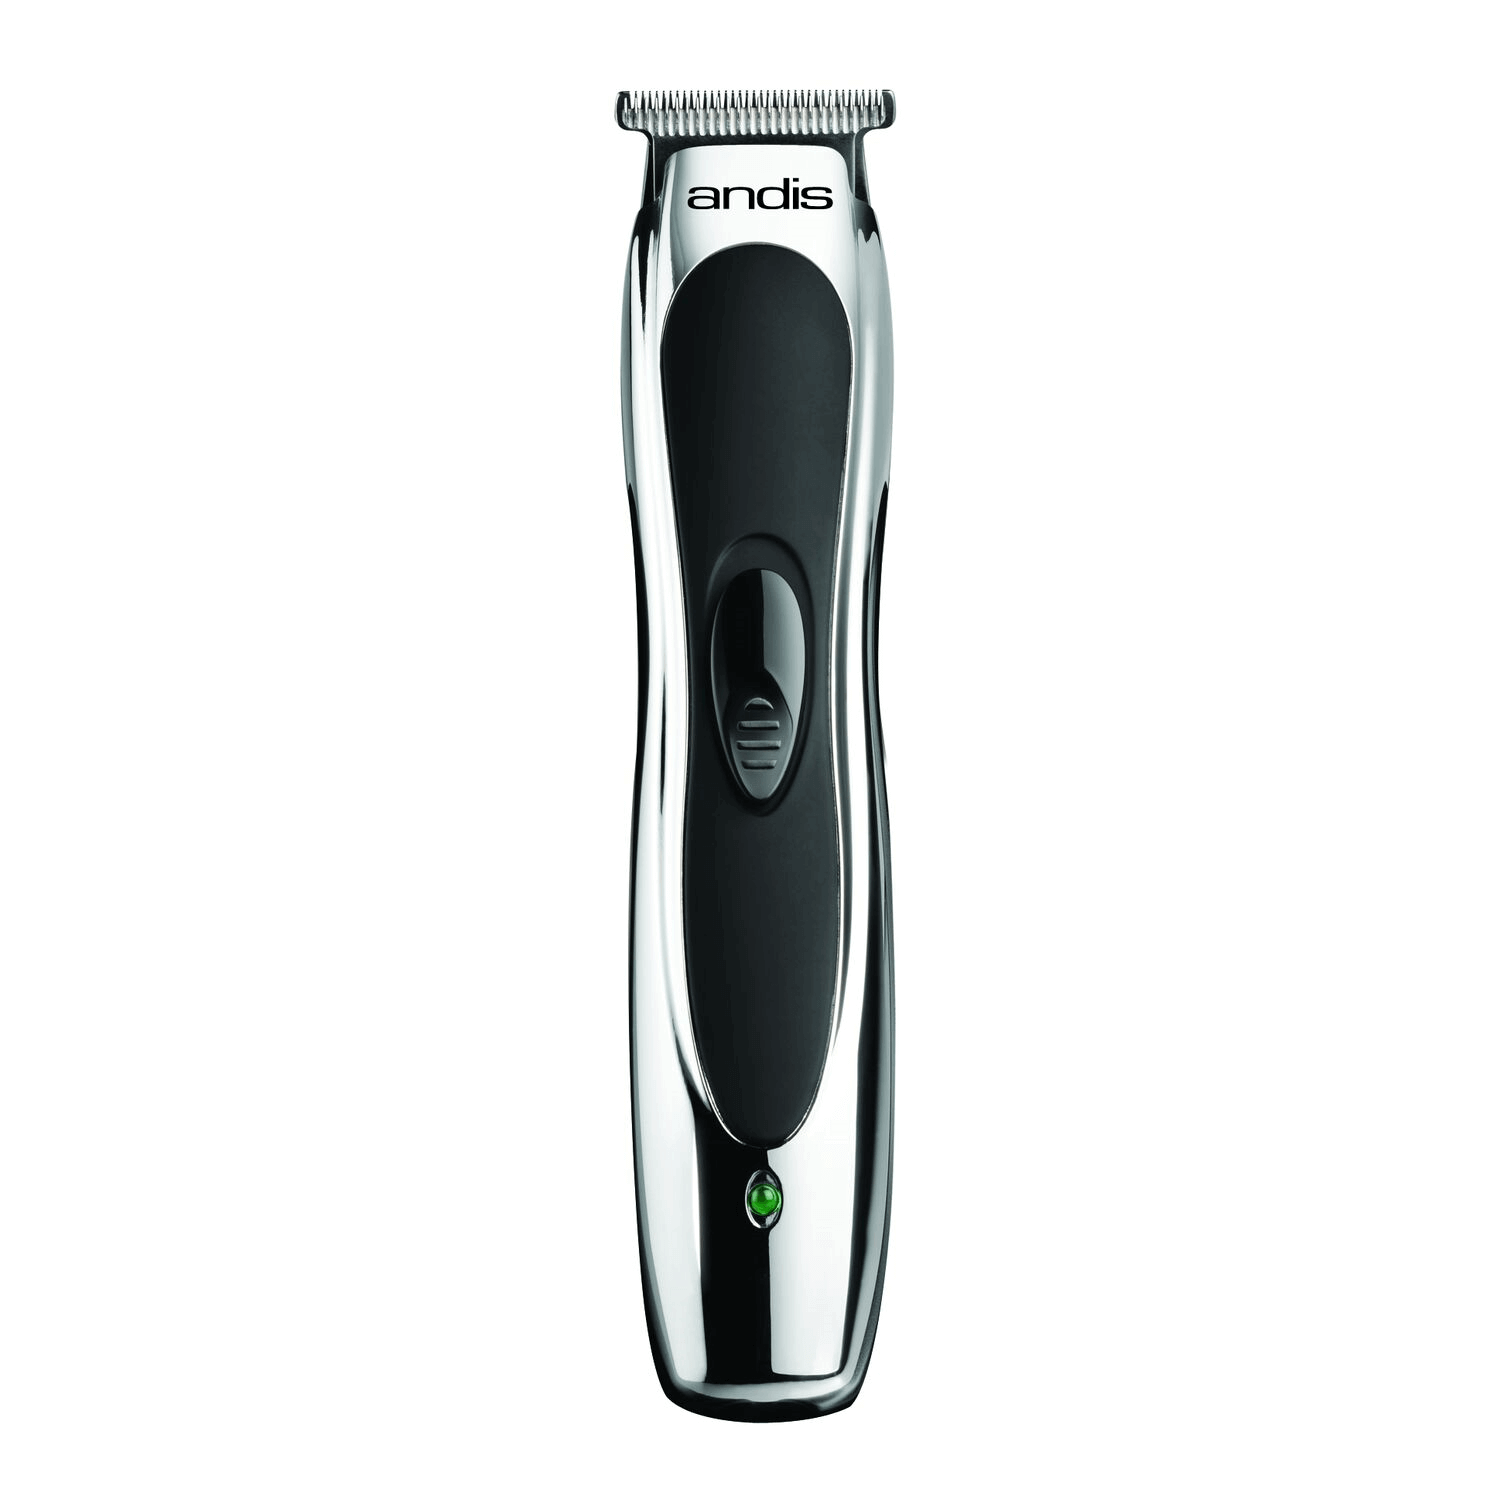 AUTHORIZED DEALER Andis Slimline 2 Cordless Trimmer #23885; Shaping /& Trimming